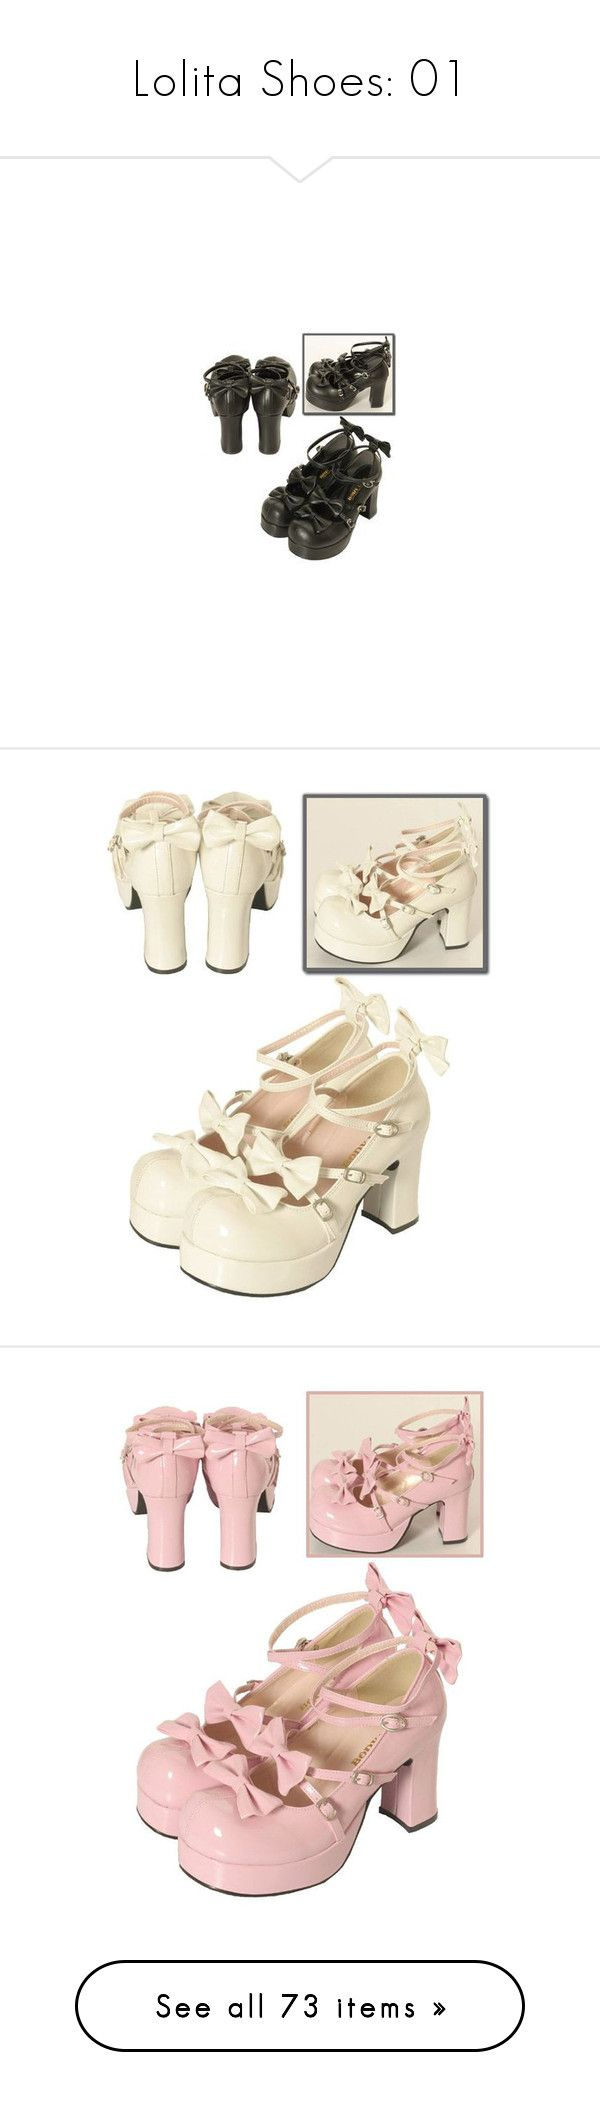 """""""Lolita Shoes: 01"""" by scandent ❤ liked on Polyvore featuring shoes, bodyline shoes, bodyline, pumps, chunky heel platform pumps, thick heel shoes, high heeled footwear, thick-heel pumps, platform pumps and high heel shoes"""